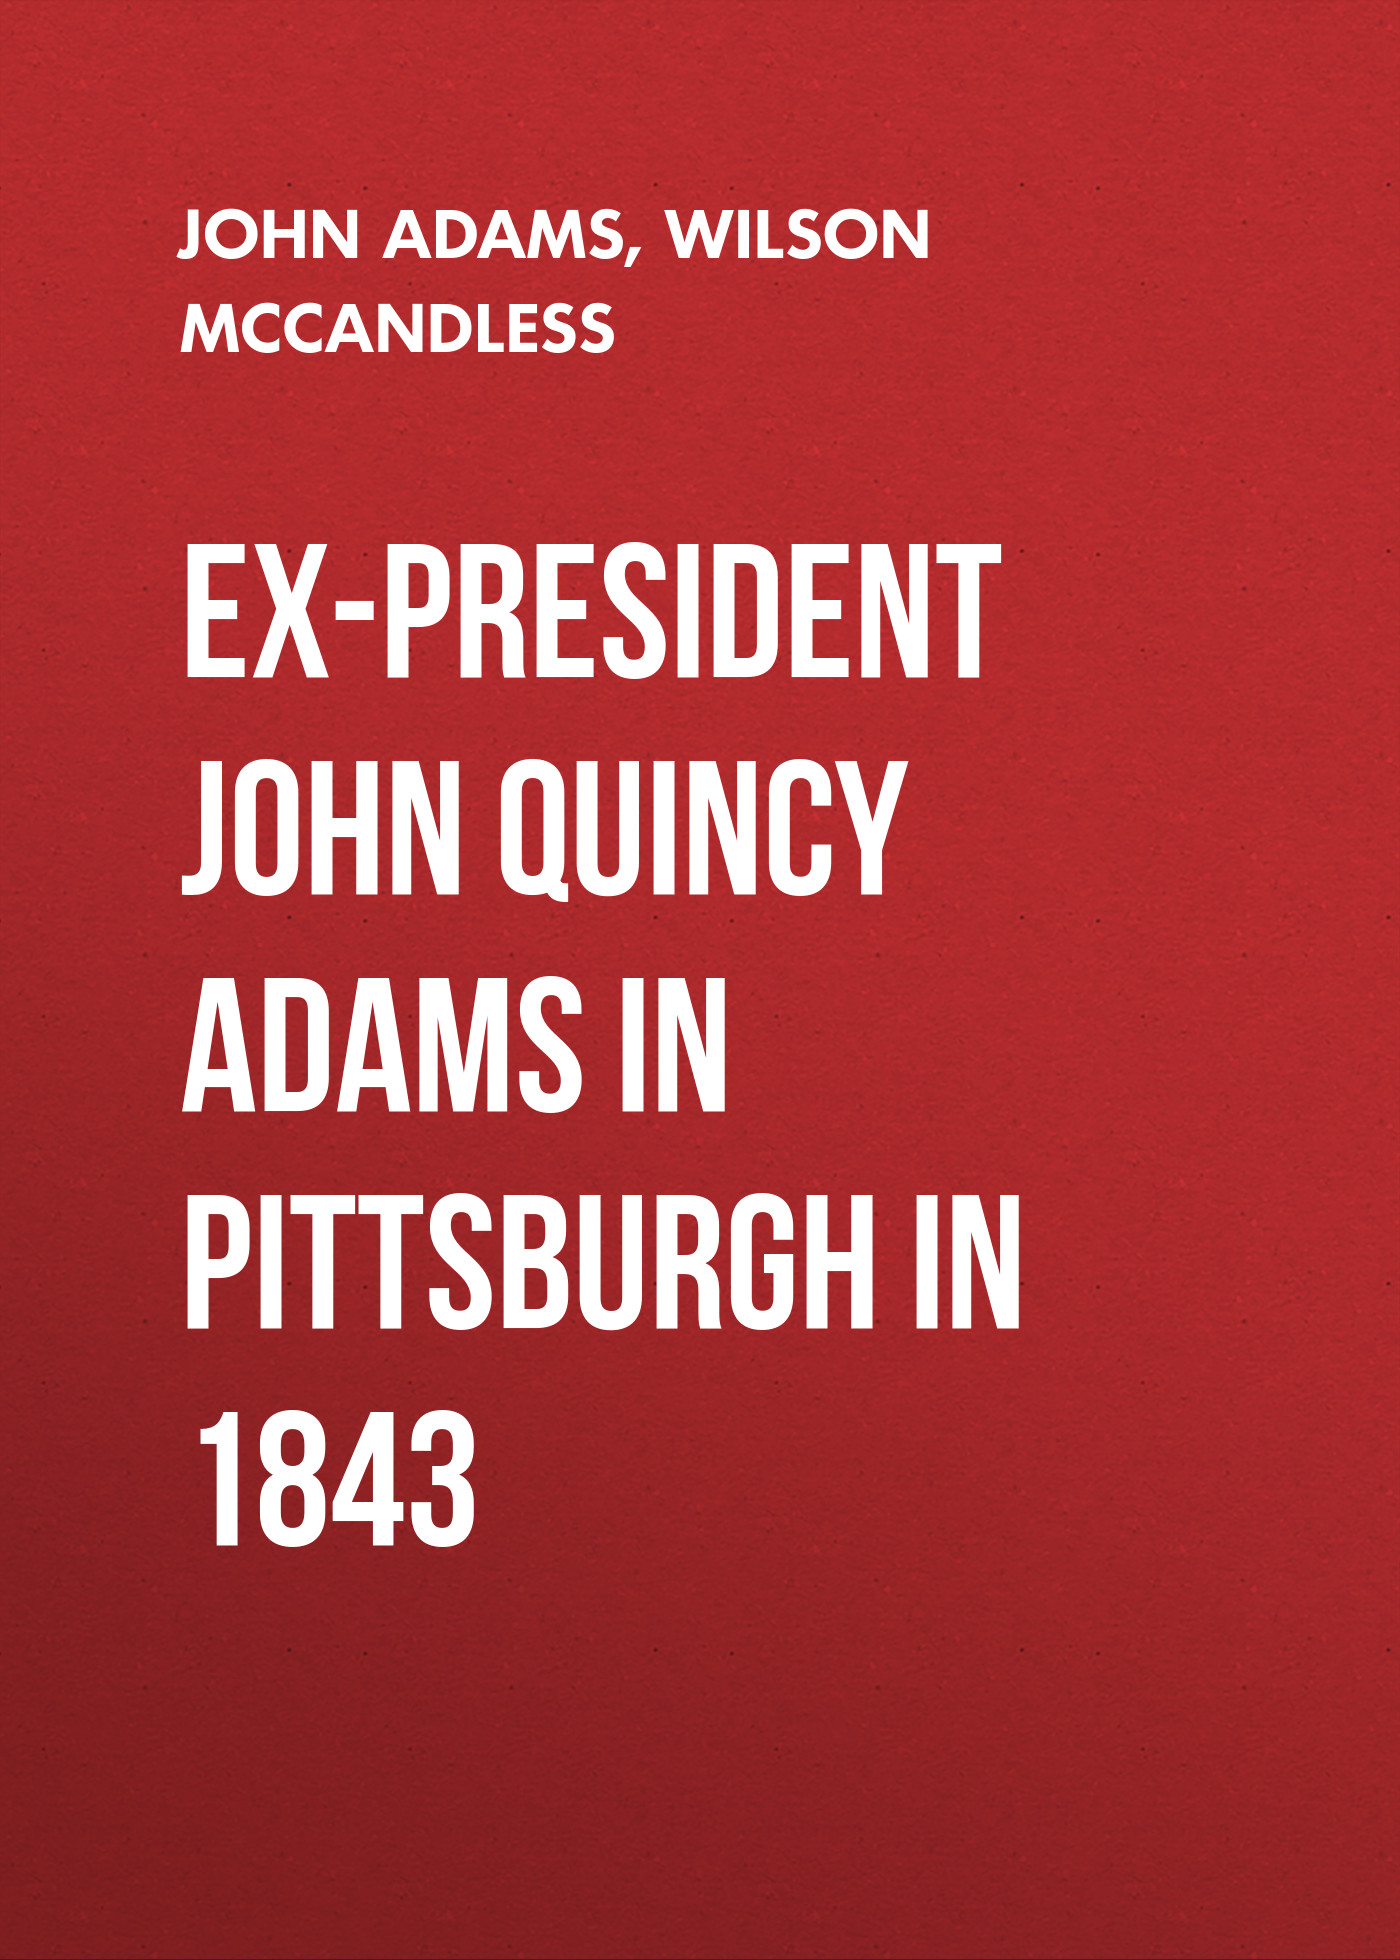 Adams John Quincy Ex-President John Quincy Adams in Pittsburgh in 1843 olagues john summa john f getting started in employee stock options